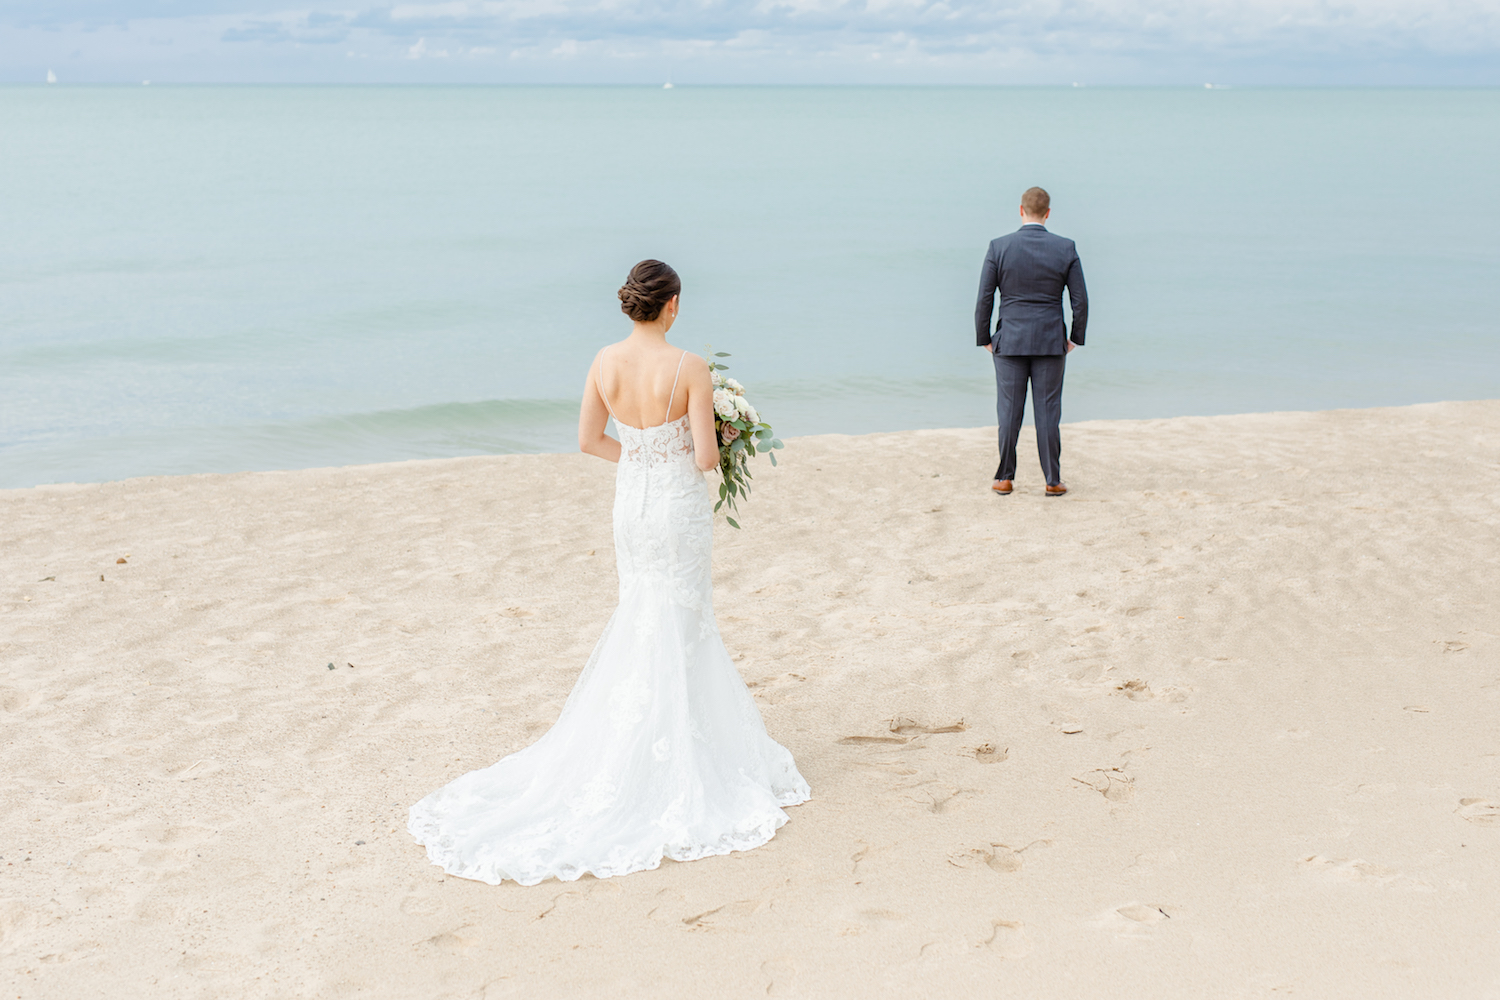 Bride and groom on beach of the lakehouse wedding